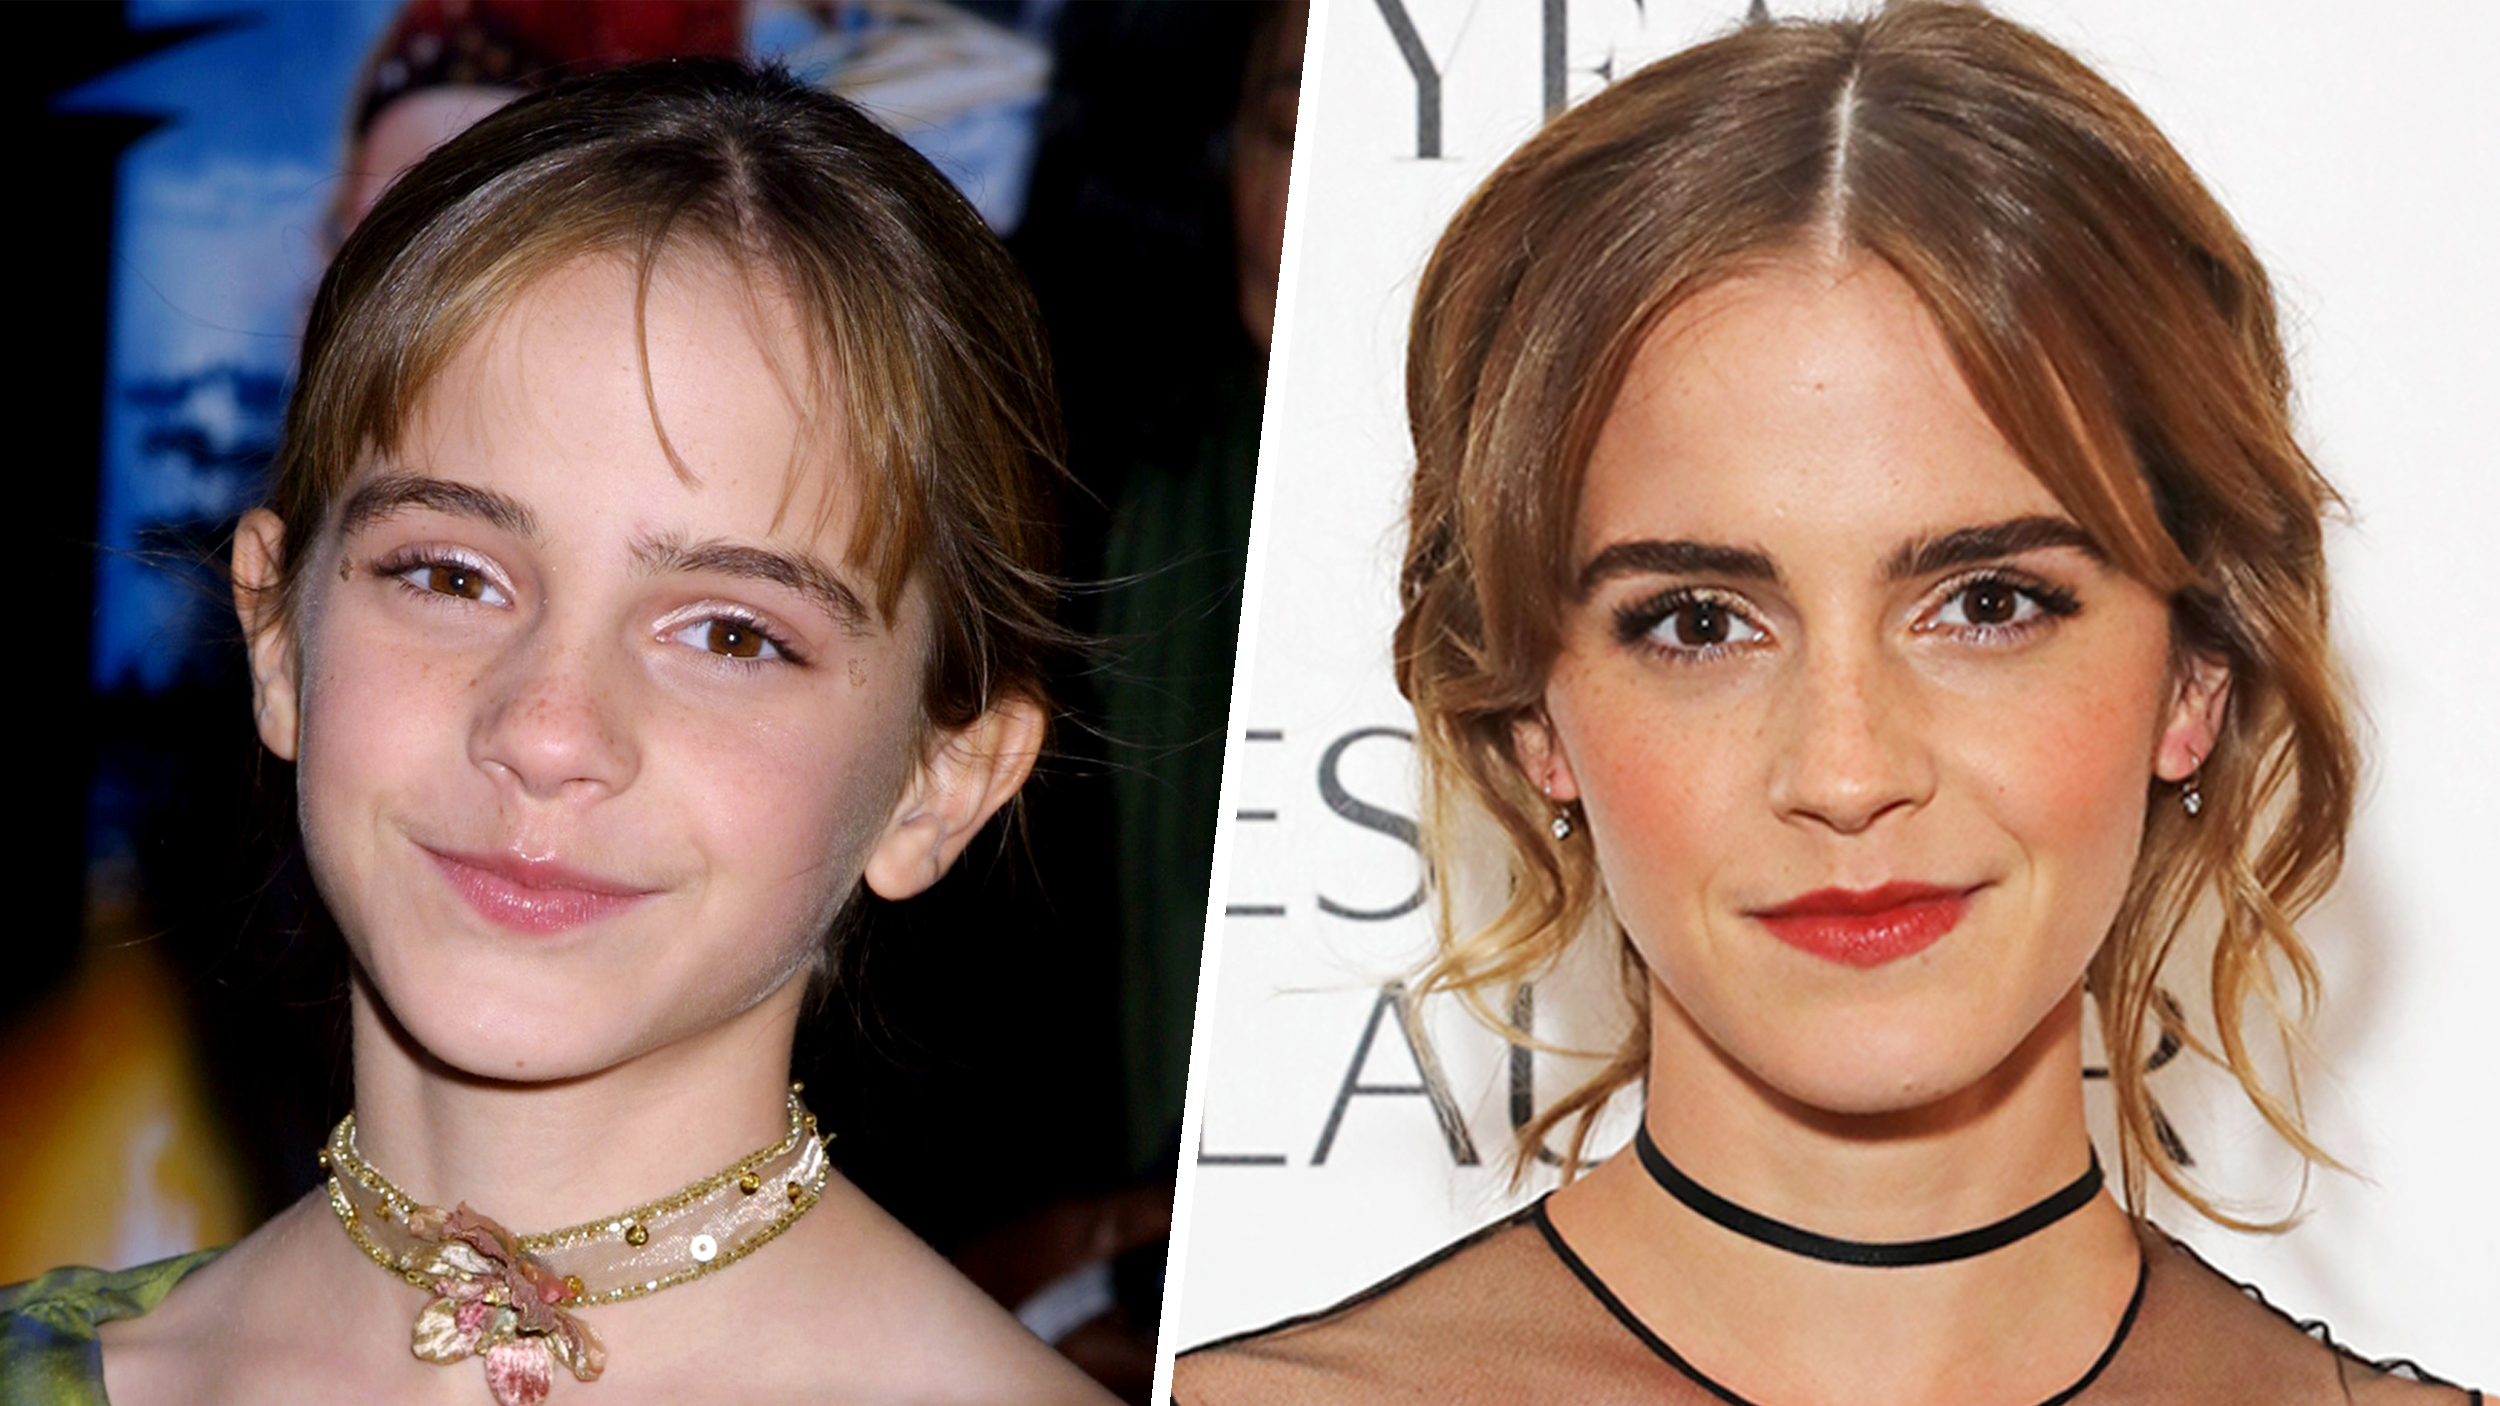 Emma watsons hair from beauty and the beast to harry potter emma watsons hair evolution from hermione to belle urmus Image collections